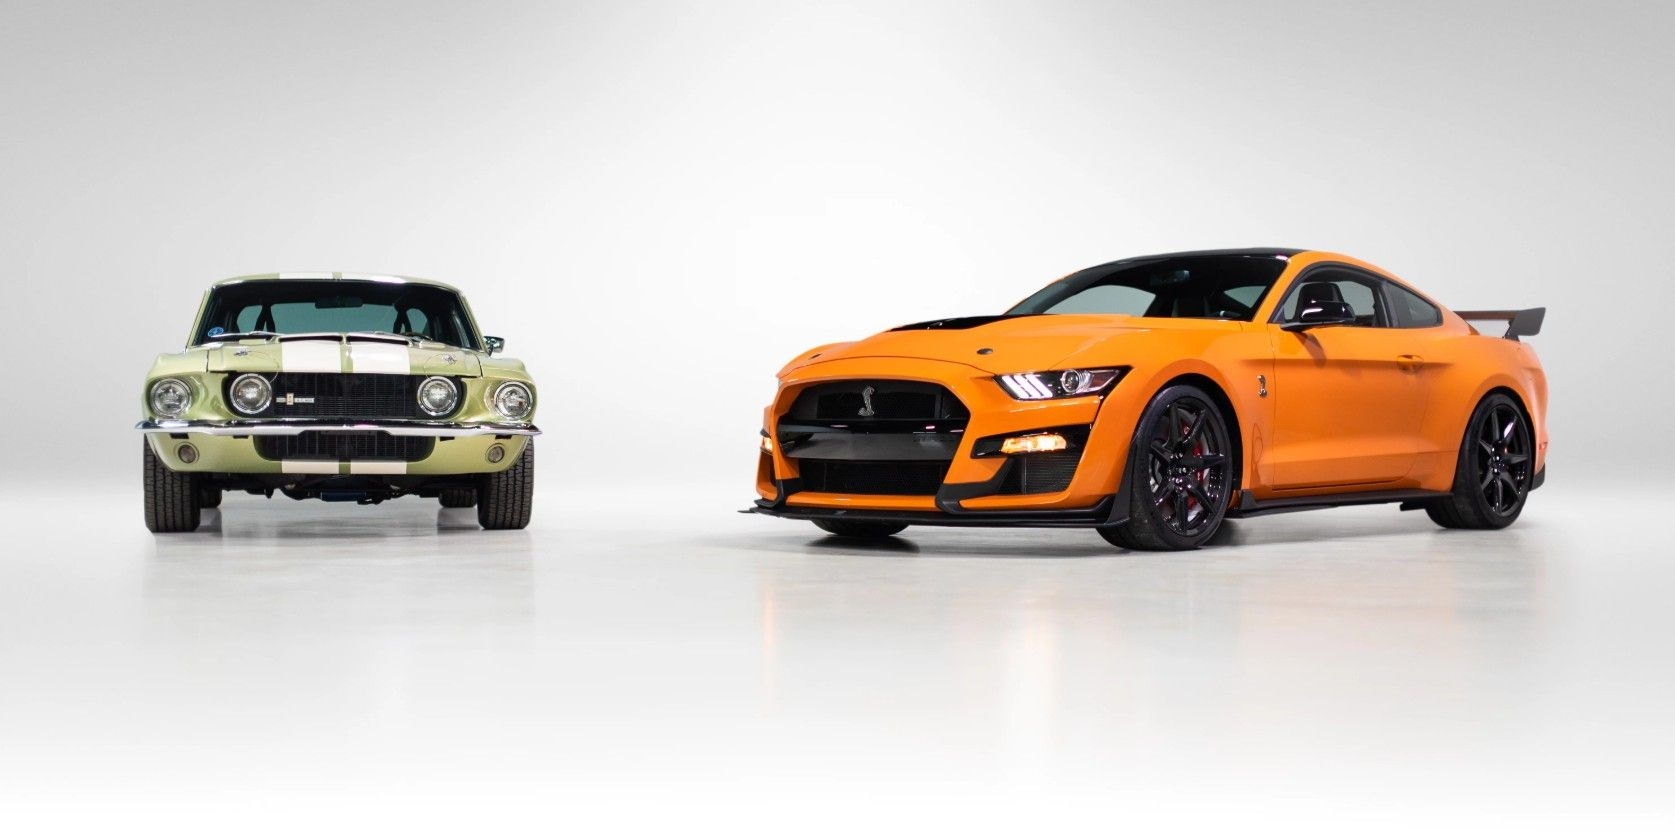 The Legacy Continues Meet The 2020 Ford Mustang Shelby Gt500 Stangbangers Shelby Gt500 Ford Mustang Shelby Ford Mustang Shelby Gt500